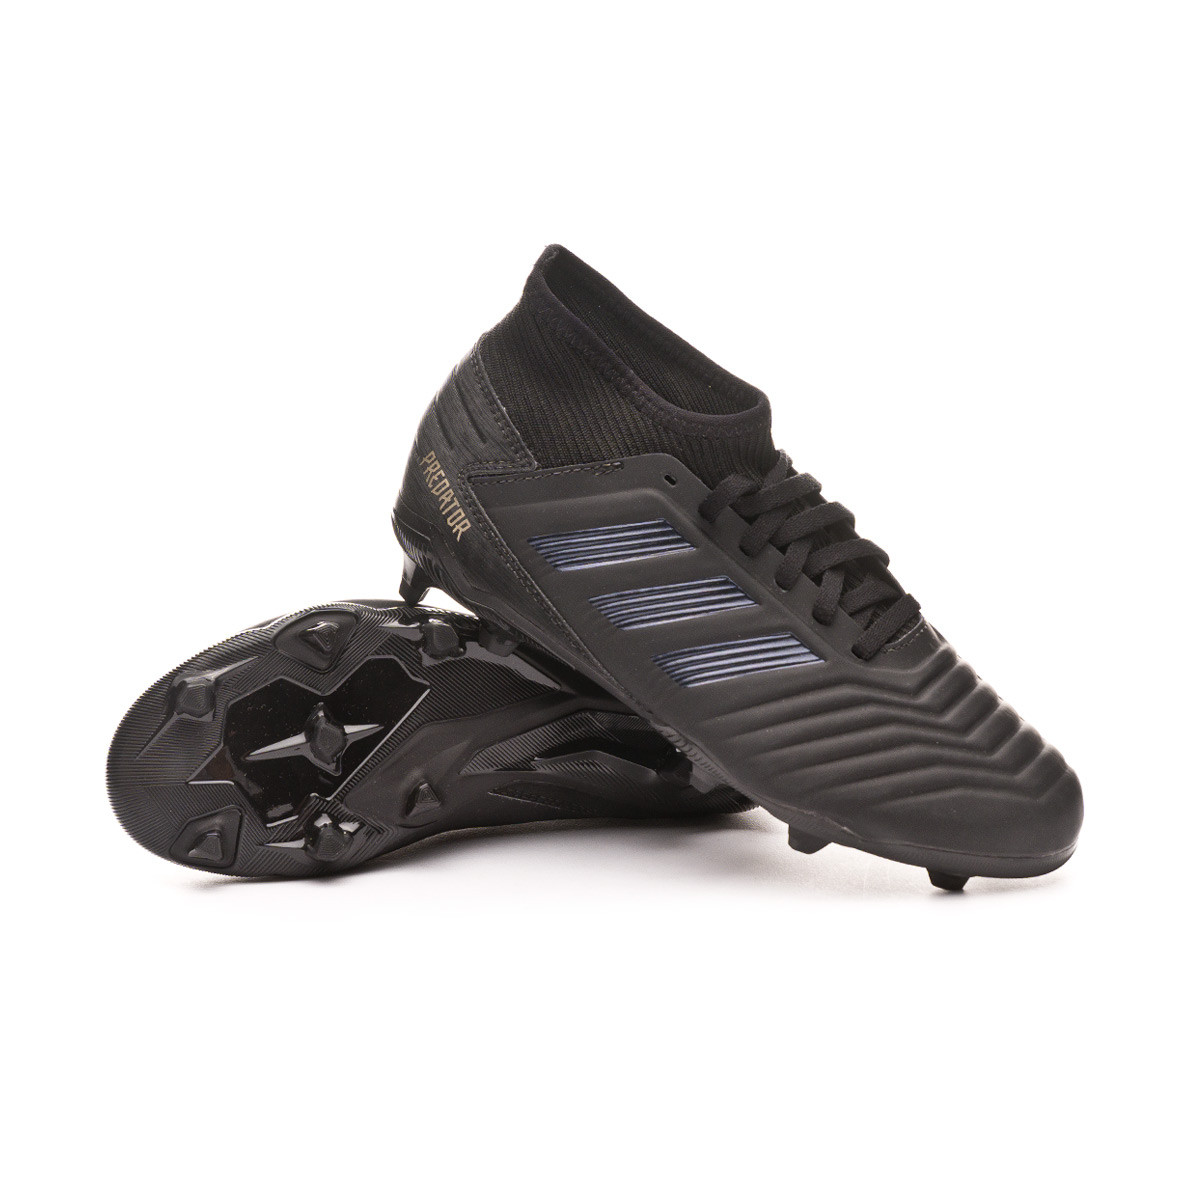 Predator Terrain synthétique | adidas France